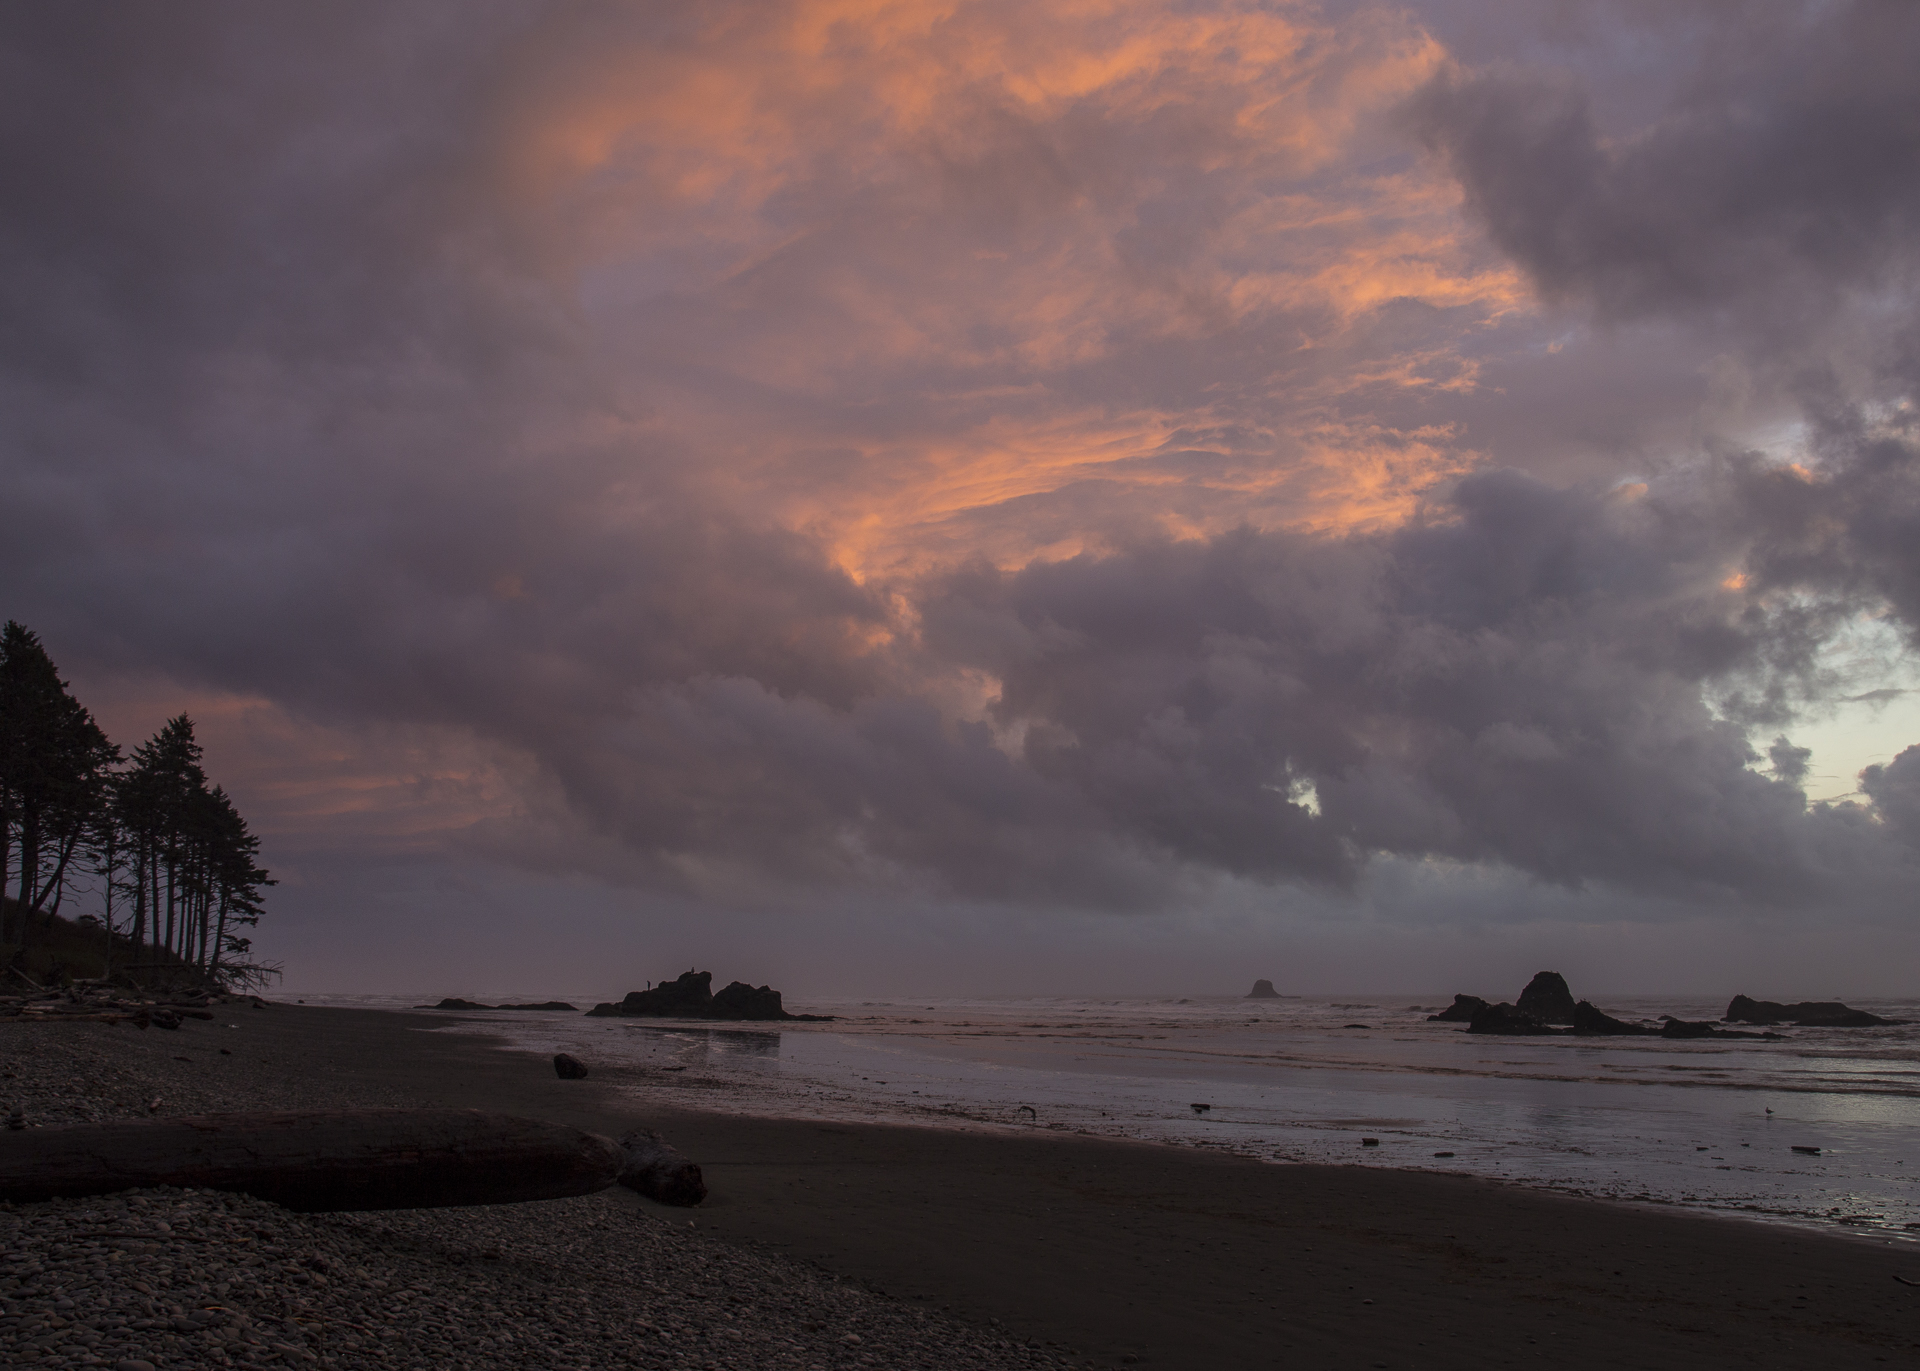 We had a last bit of colour in the sky as the sun set over Ruby Beach.